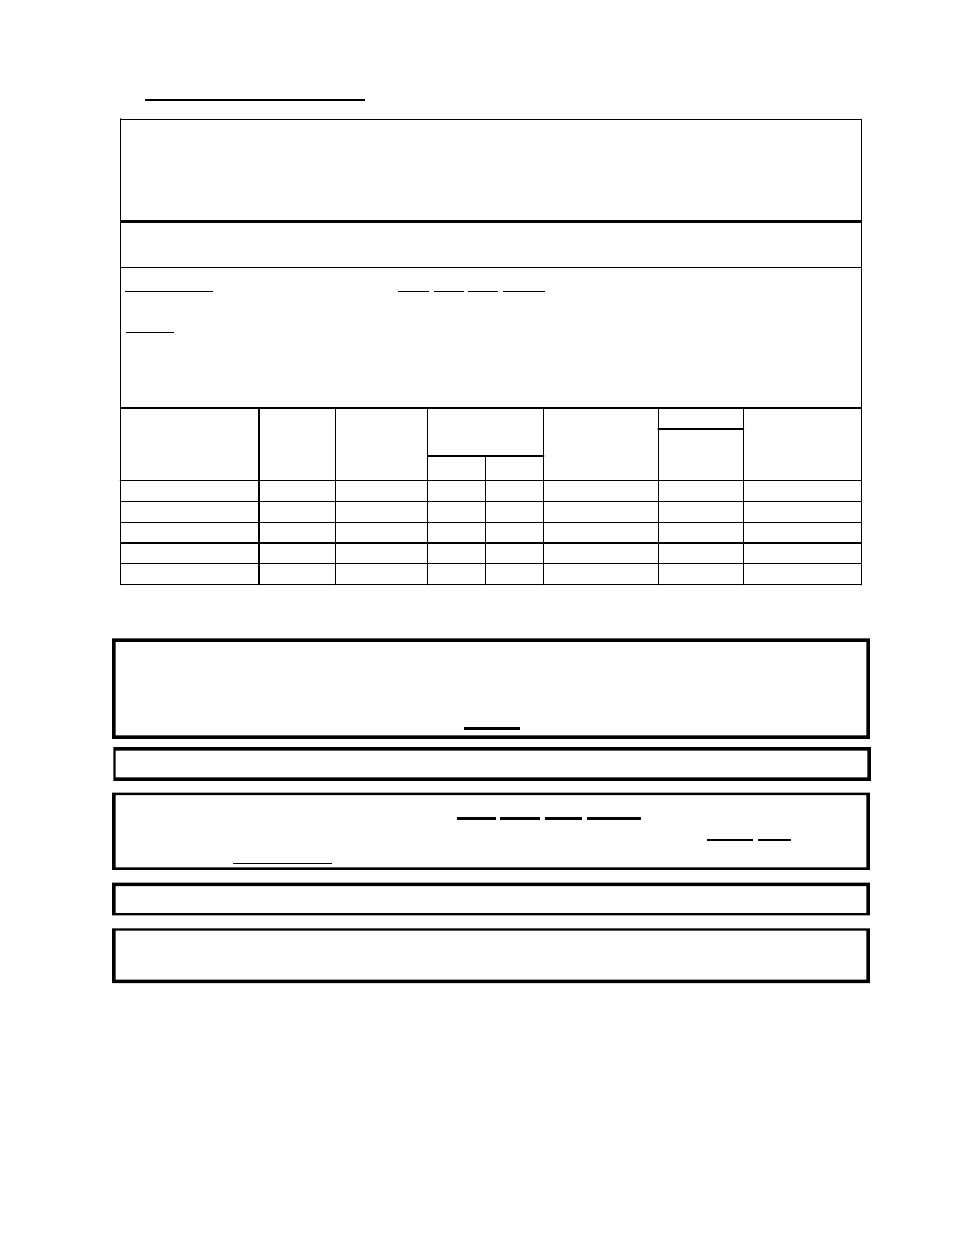 Adg-81 (gas) ads-81 (steam), Electric service specifications (per ...